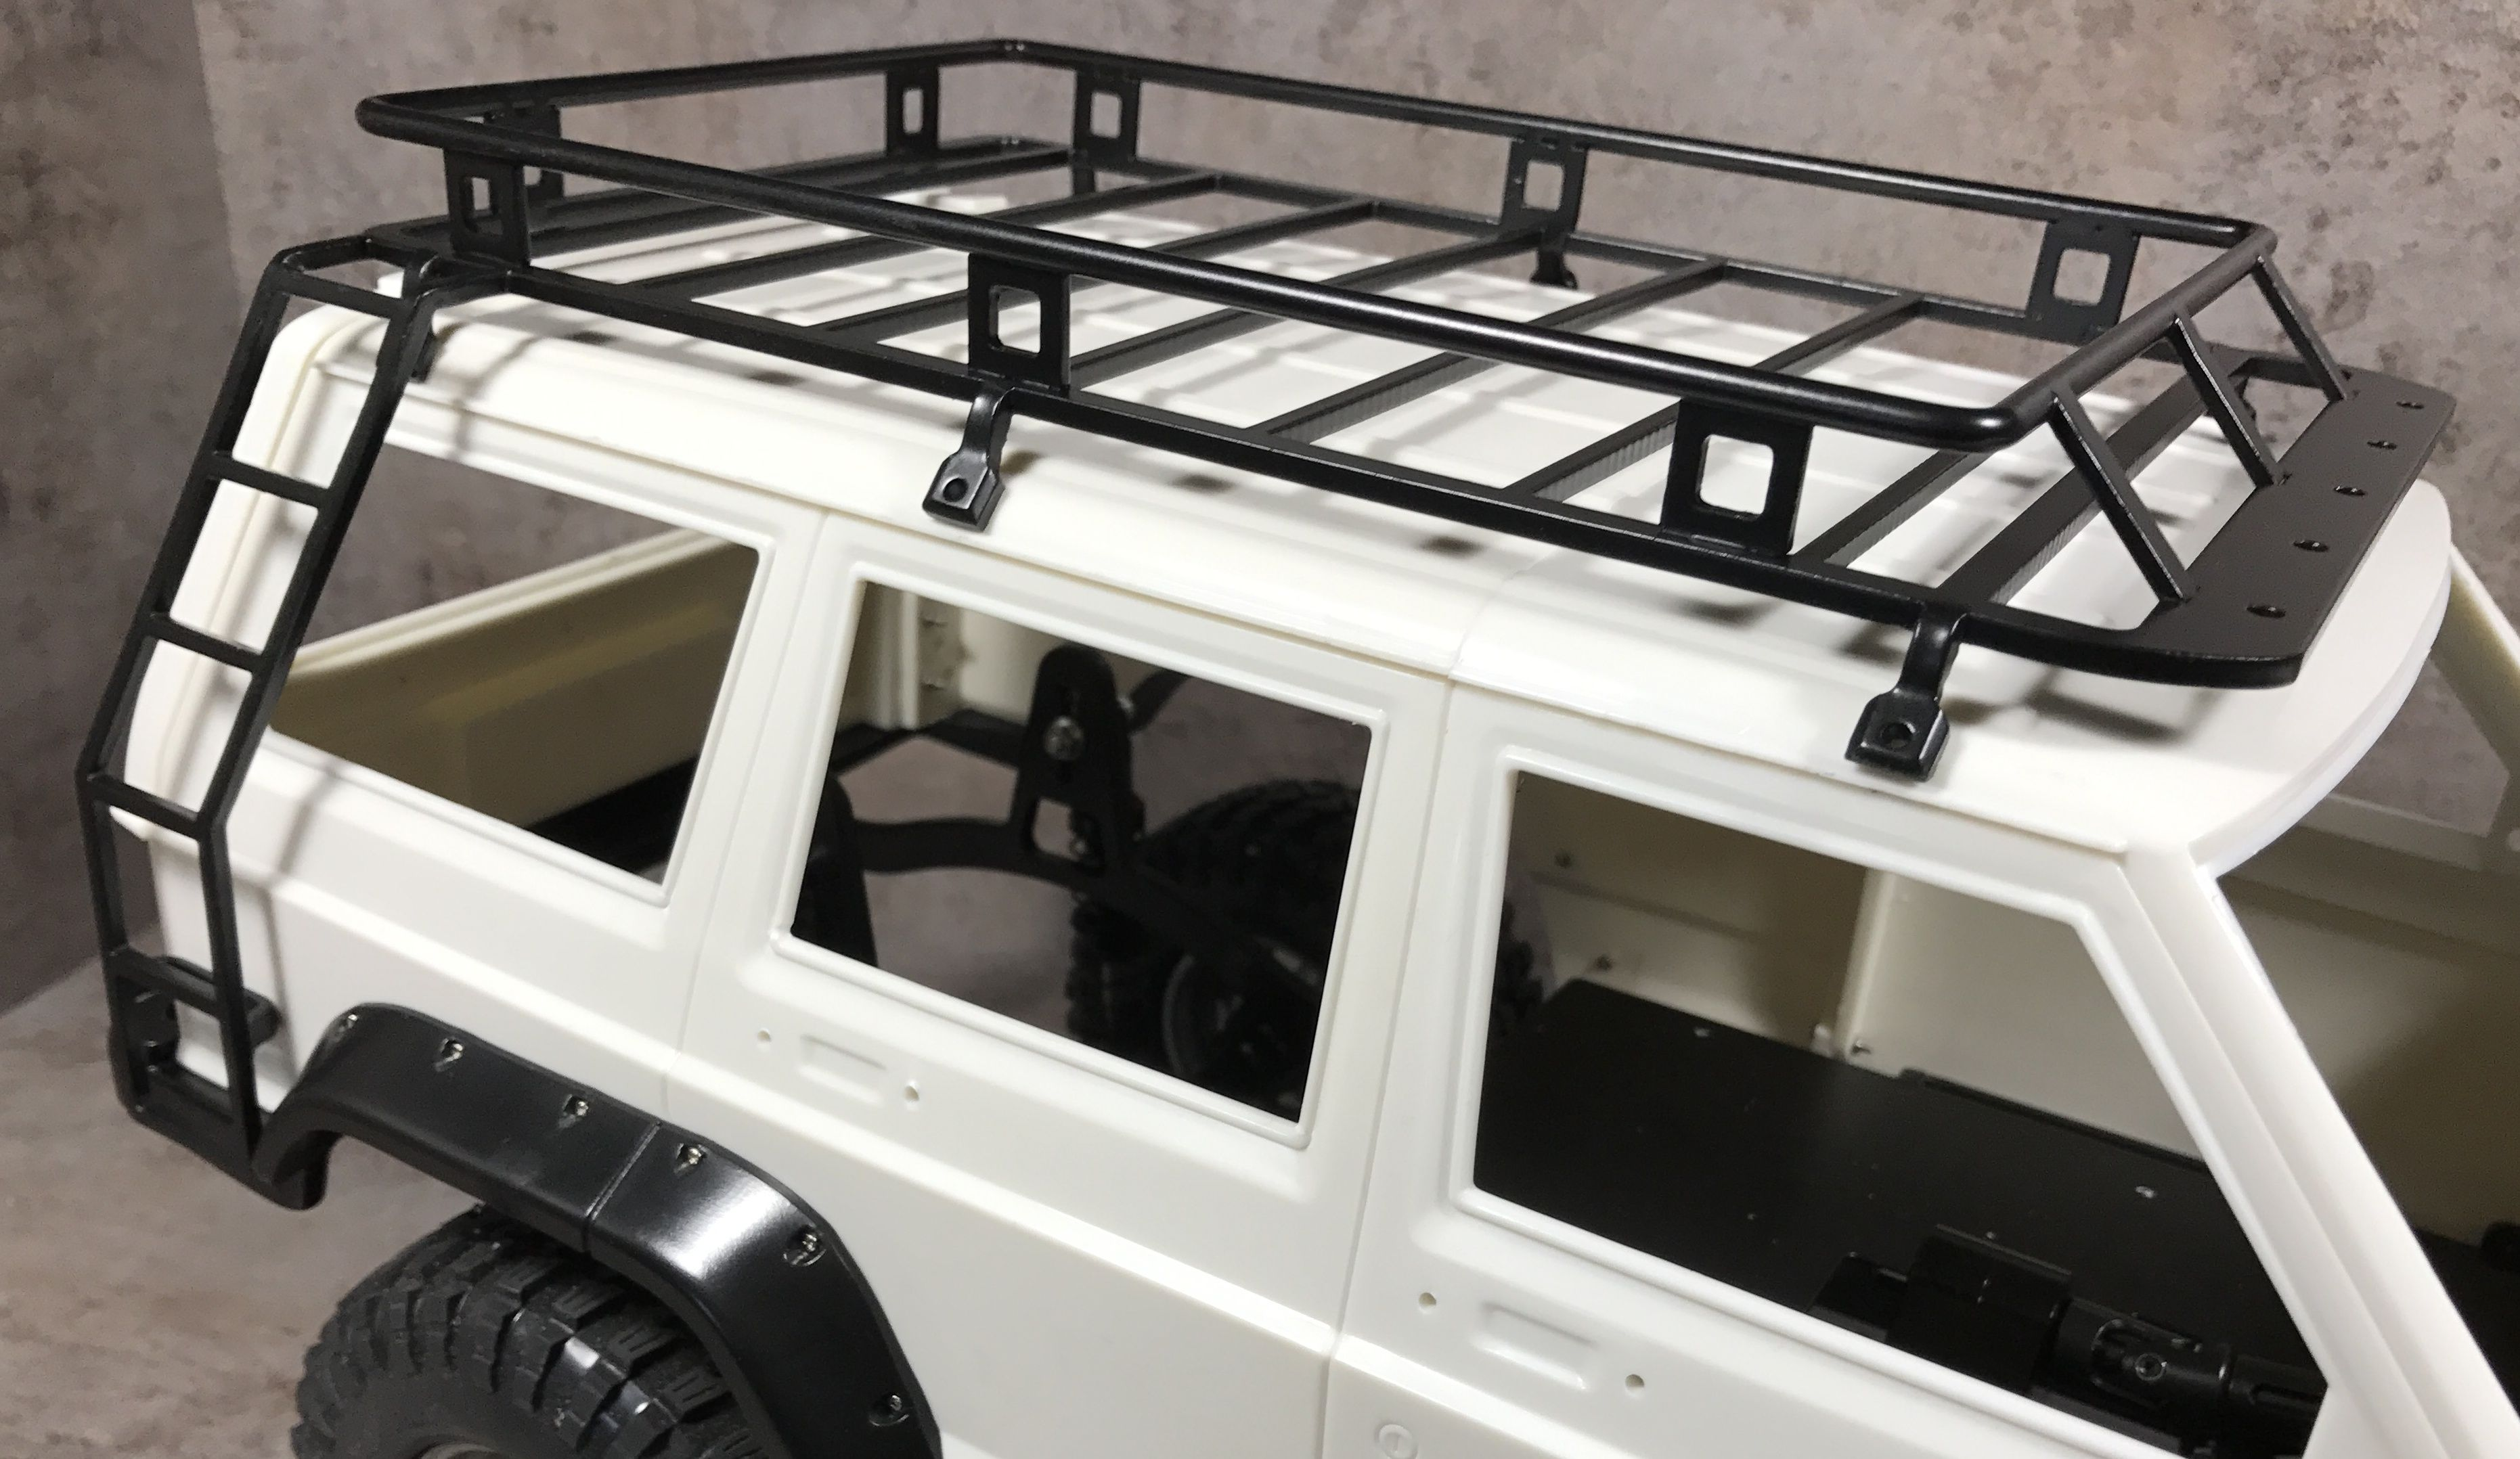 Roof Rack Frame Expedition Ii Roof Rack Ladder For Jeep Xj Mex Rcmodelex Specialized For Rc Rock Crawling Tr Jeep Xj Jeep Cherokee Roof Rack Roof Rack